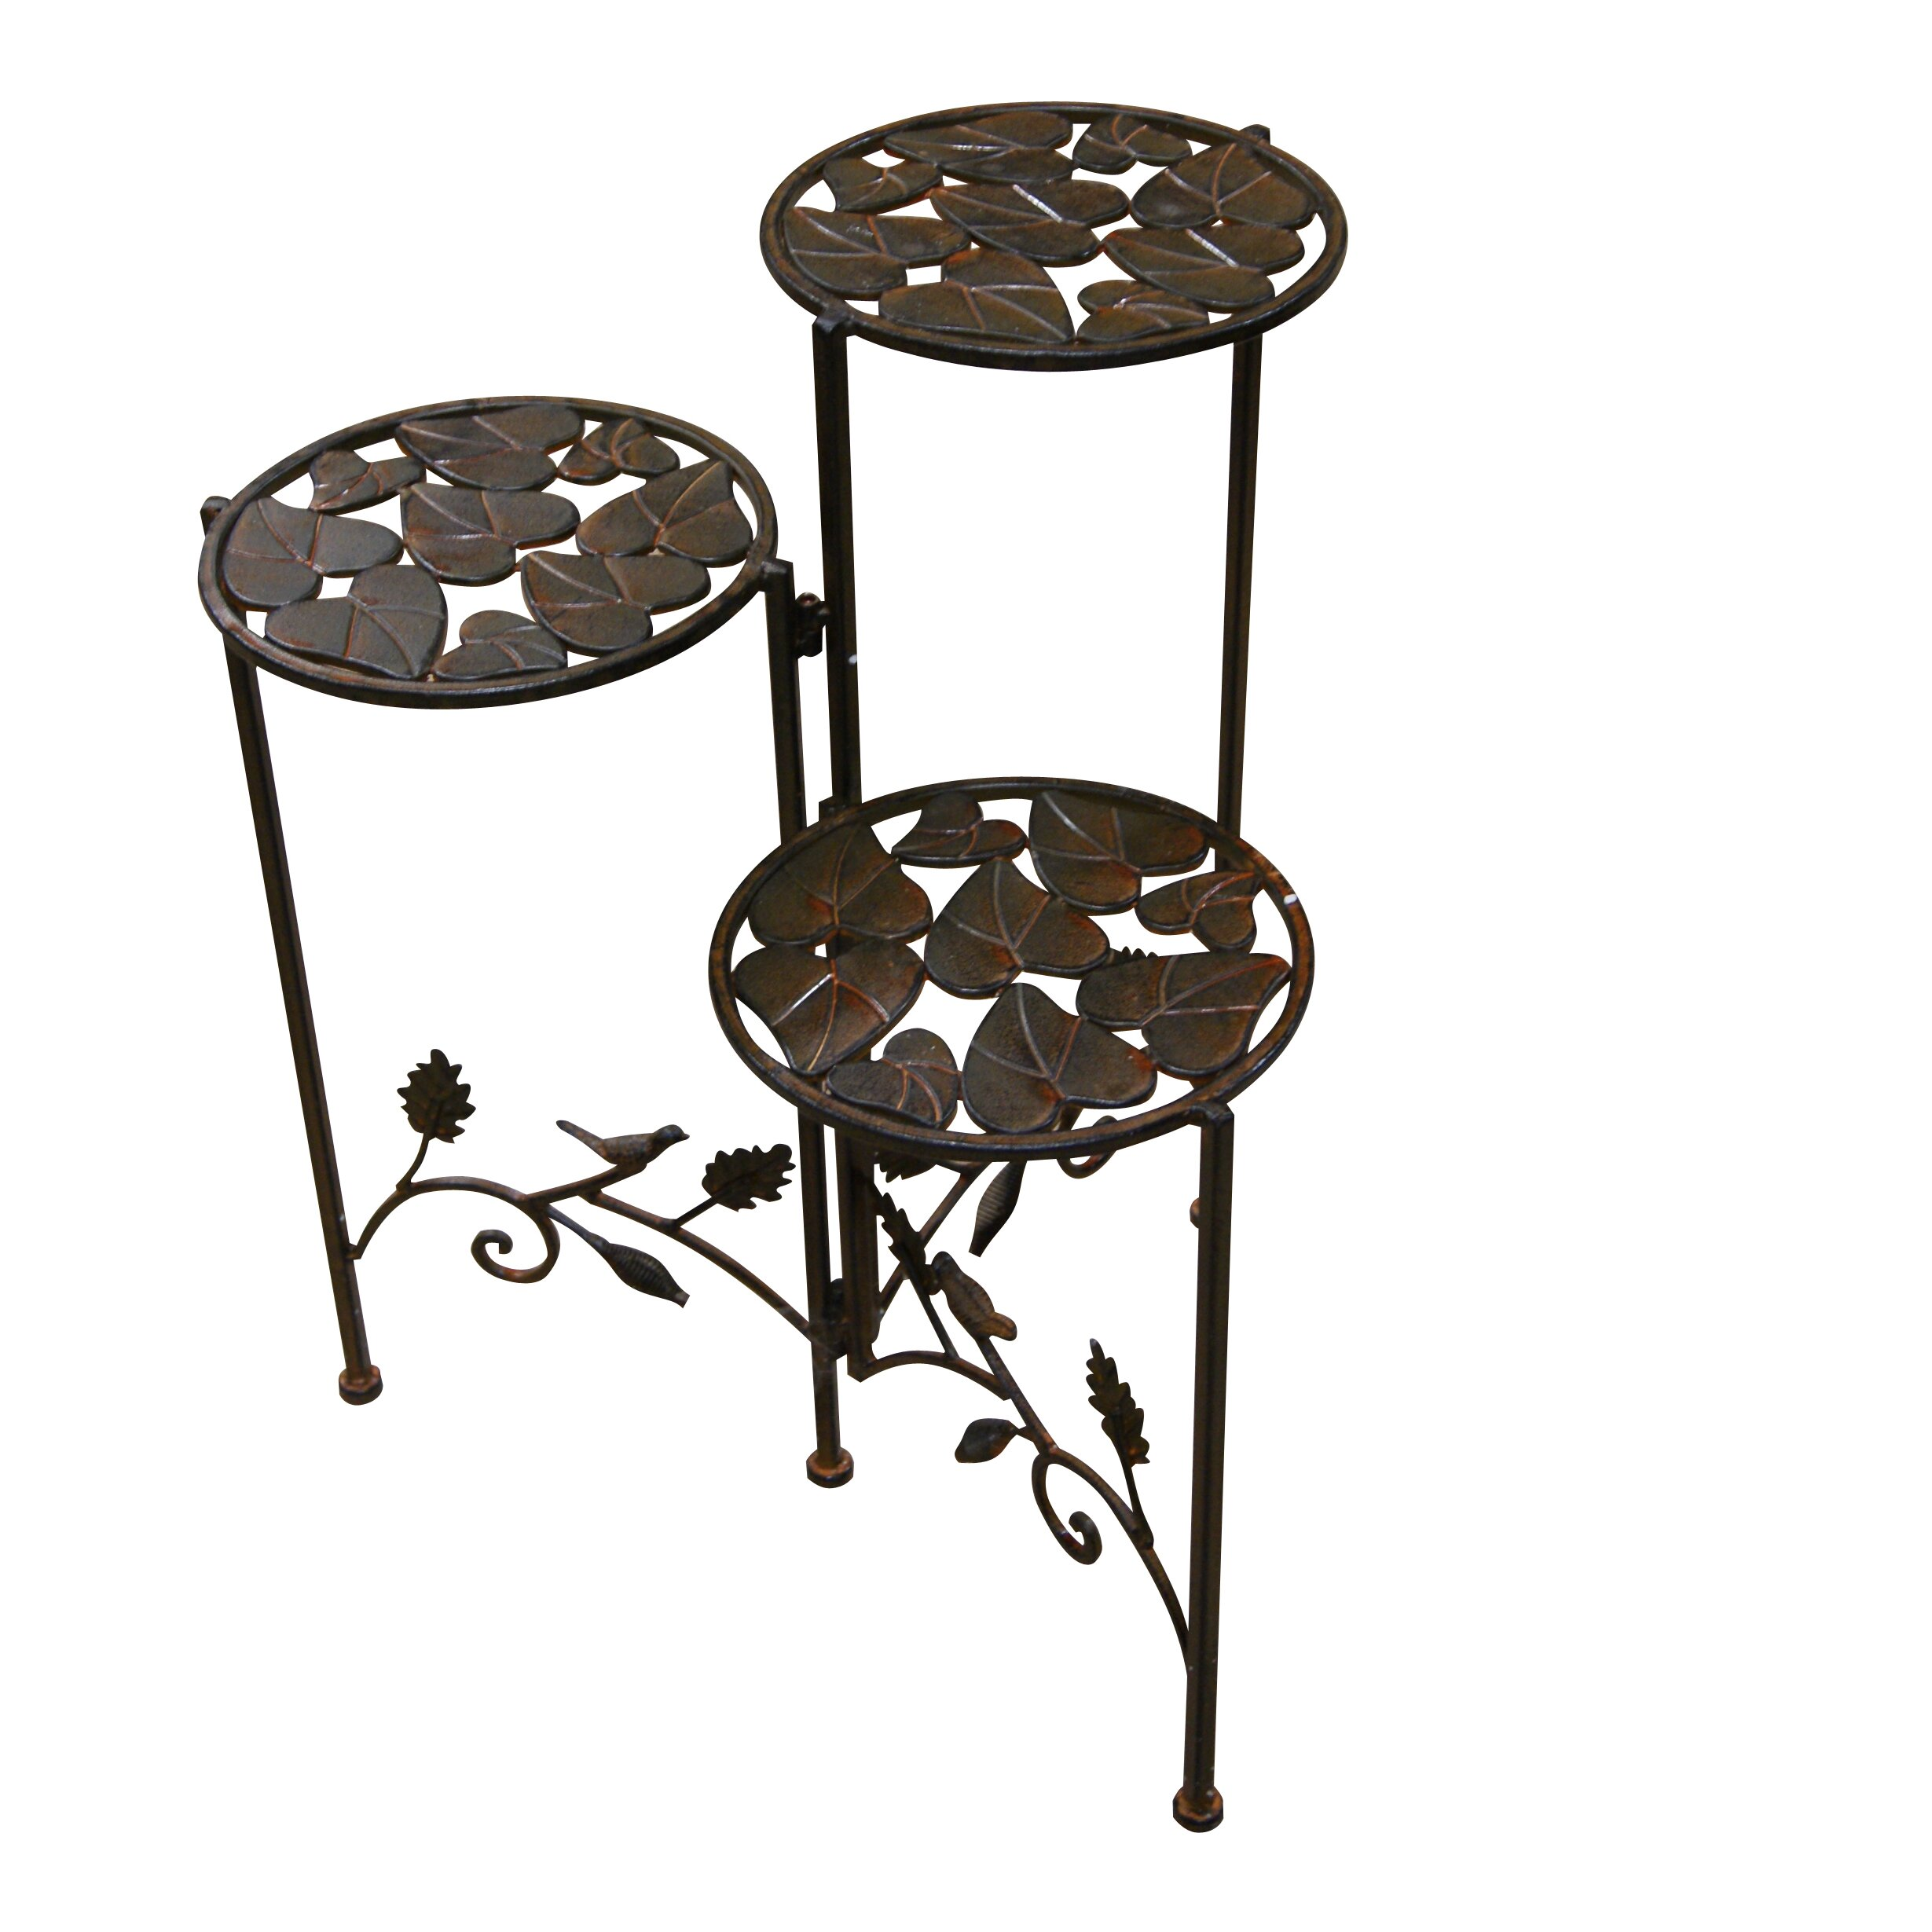 Woodland Imports 3 Tier Plant Stand Reviews Wayfair